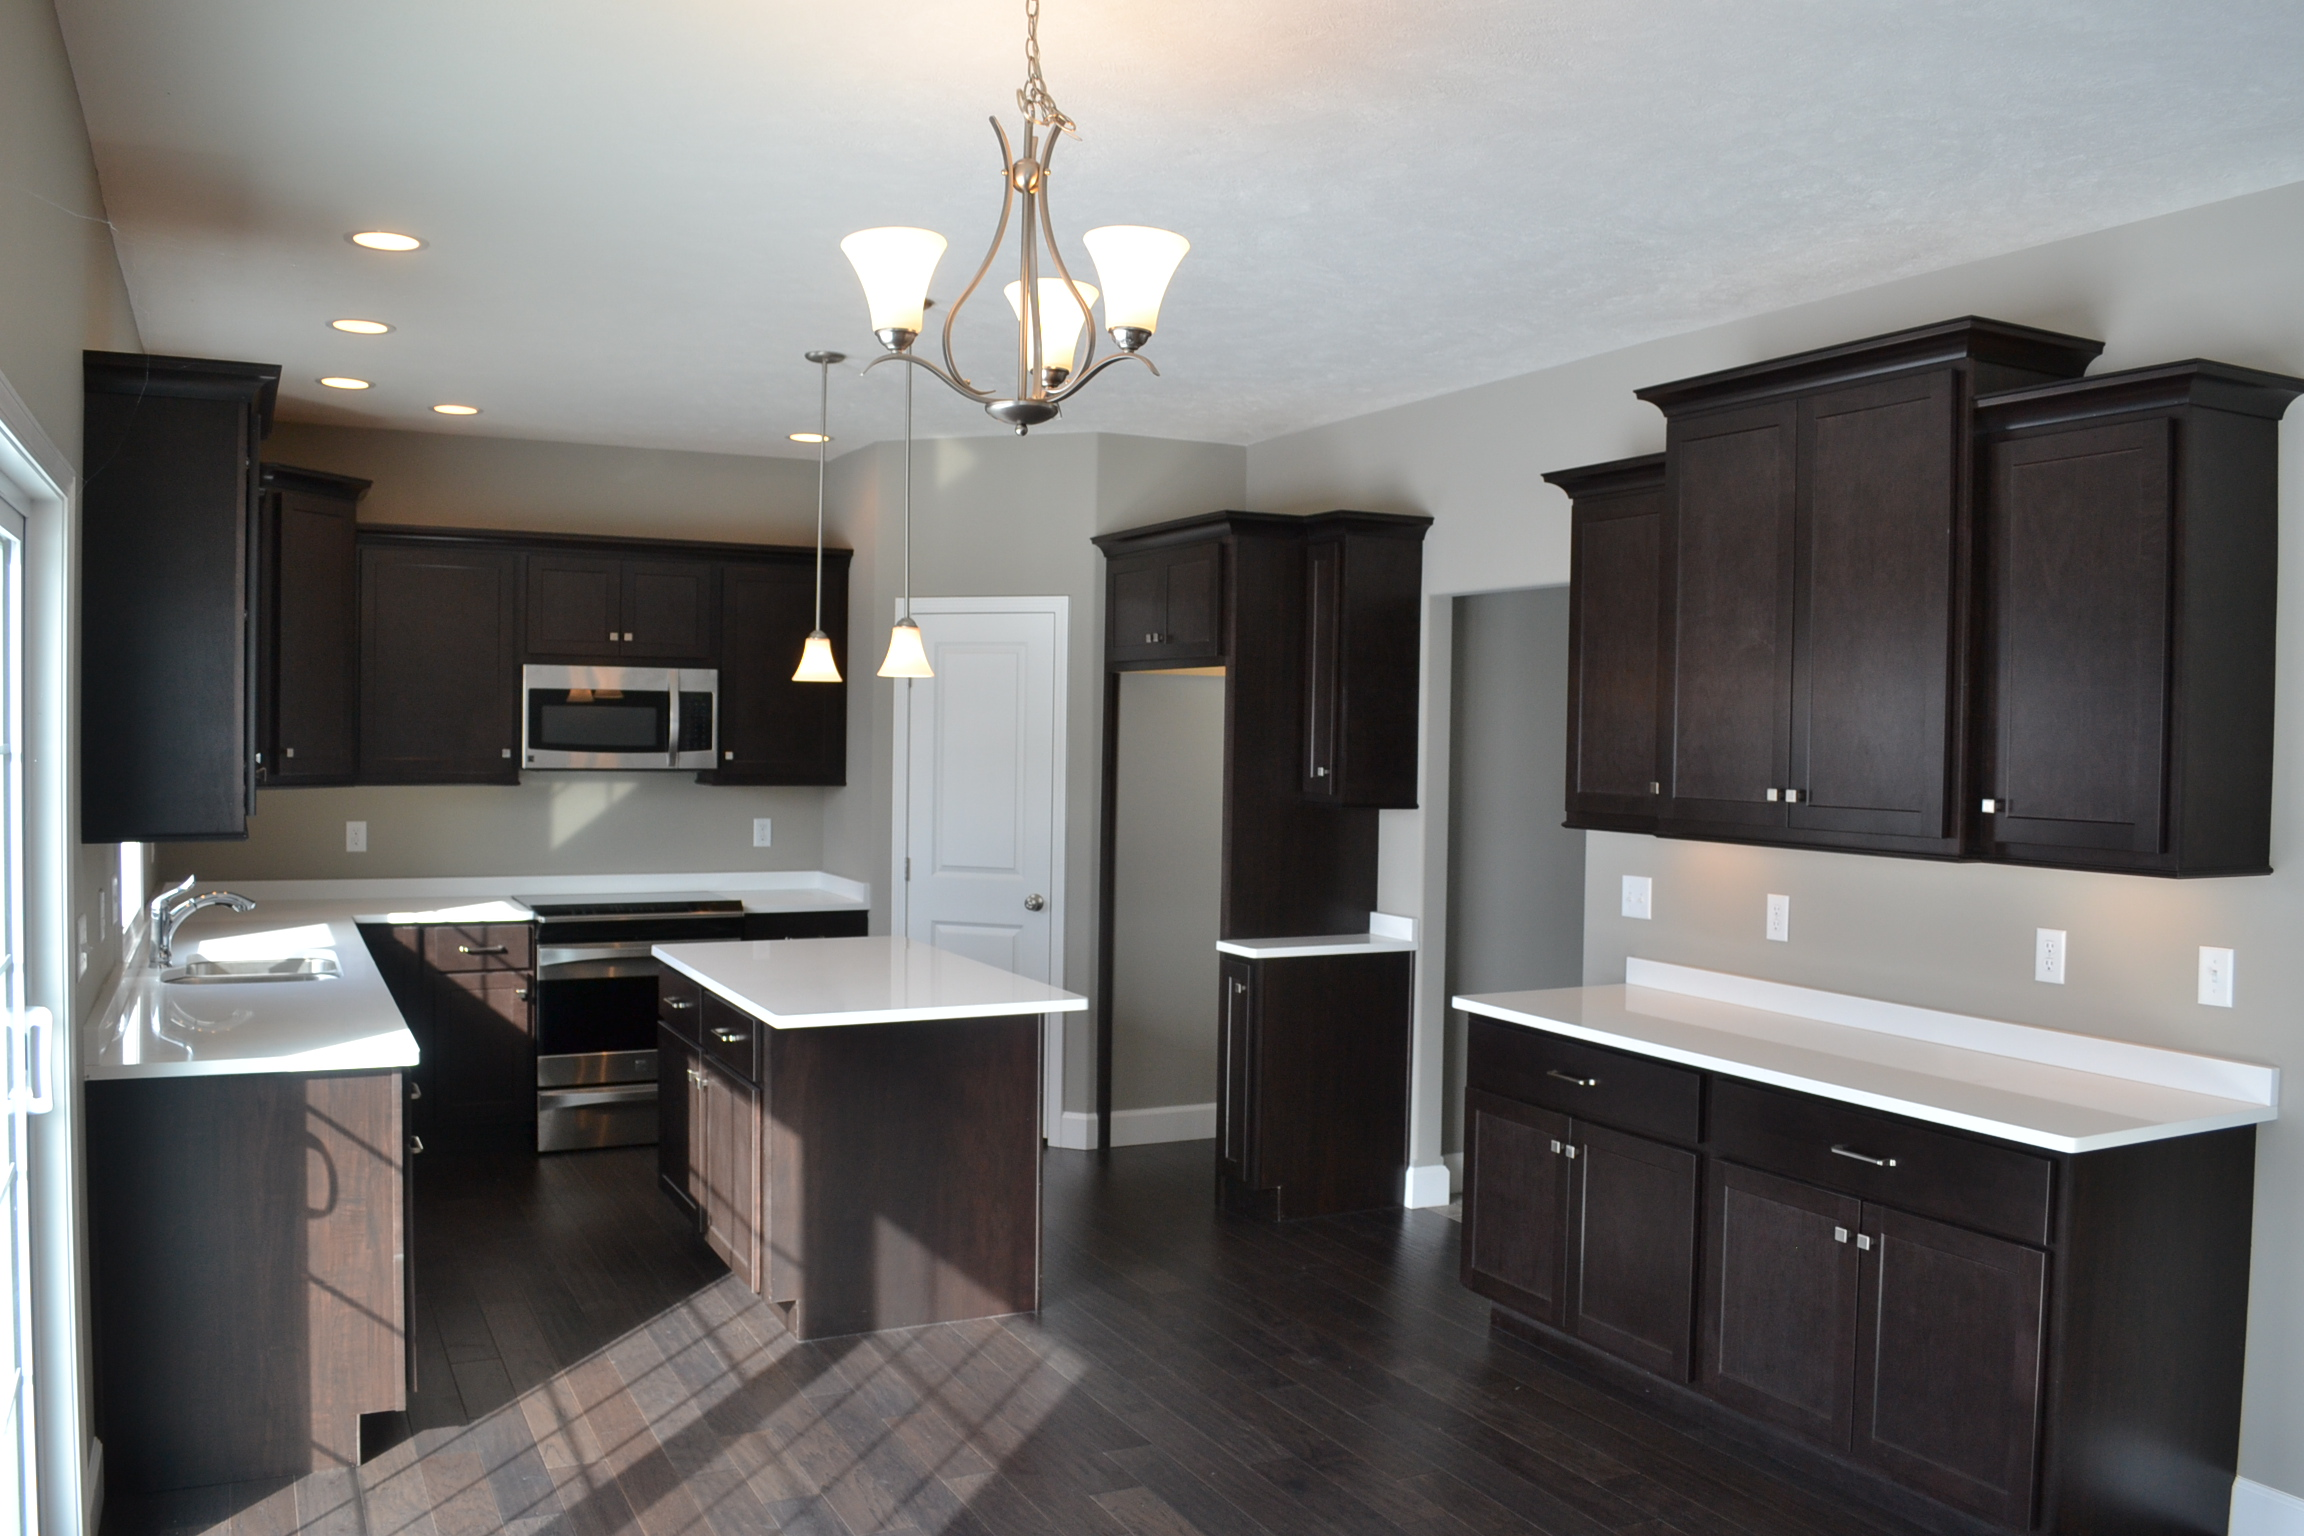 New Home in Champaign with dark wood cabinets